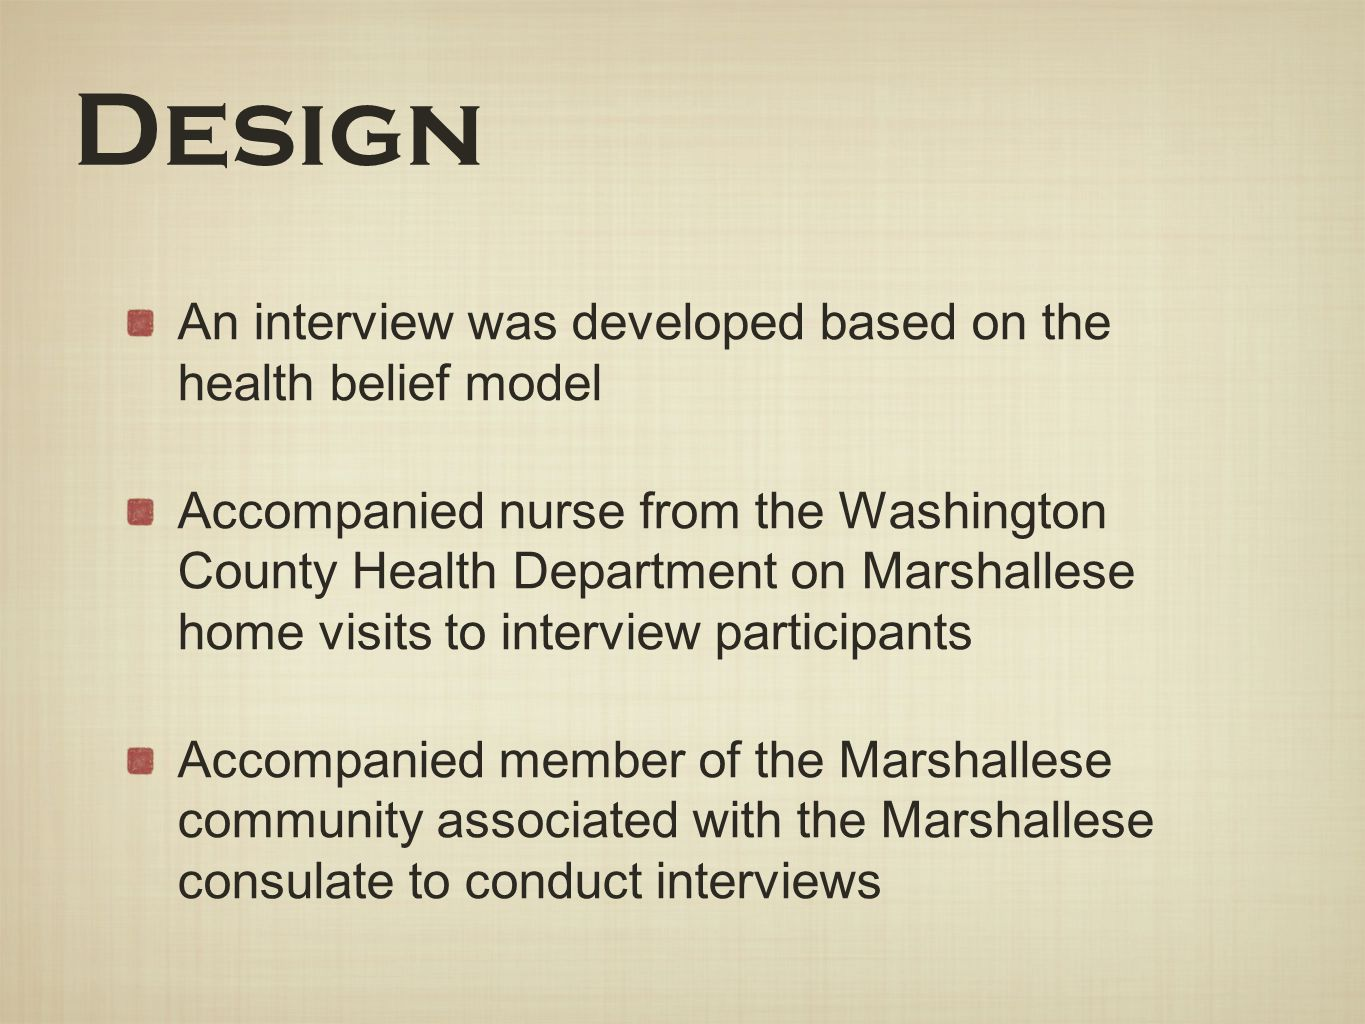 Design An interview was developed based on the health belief model